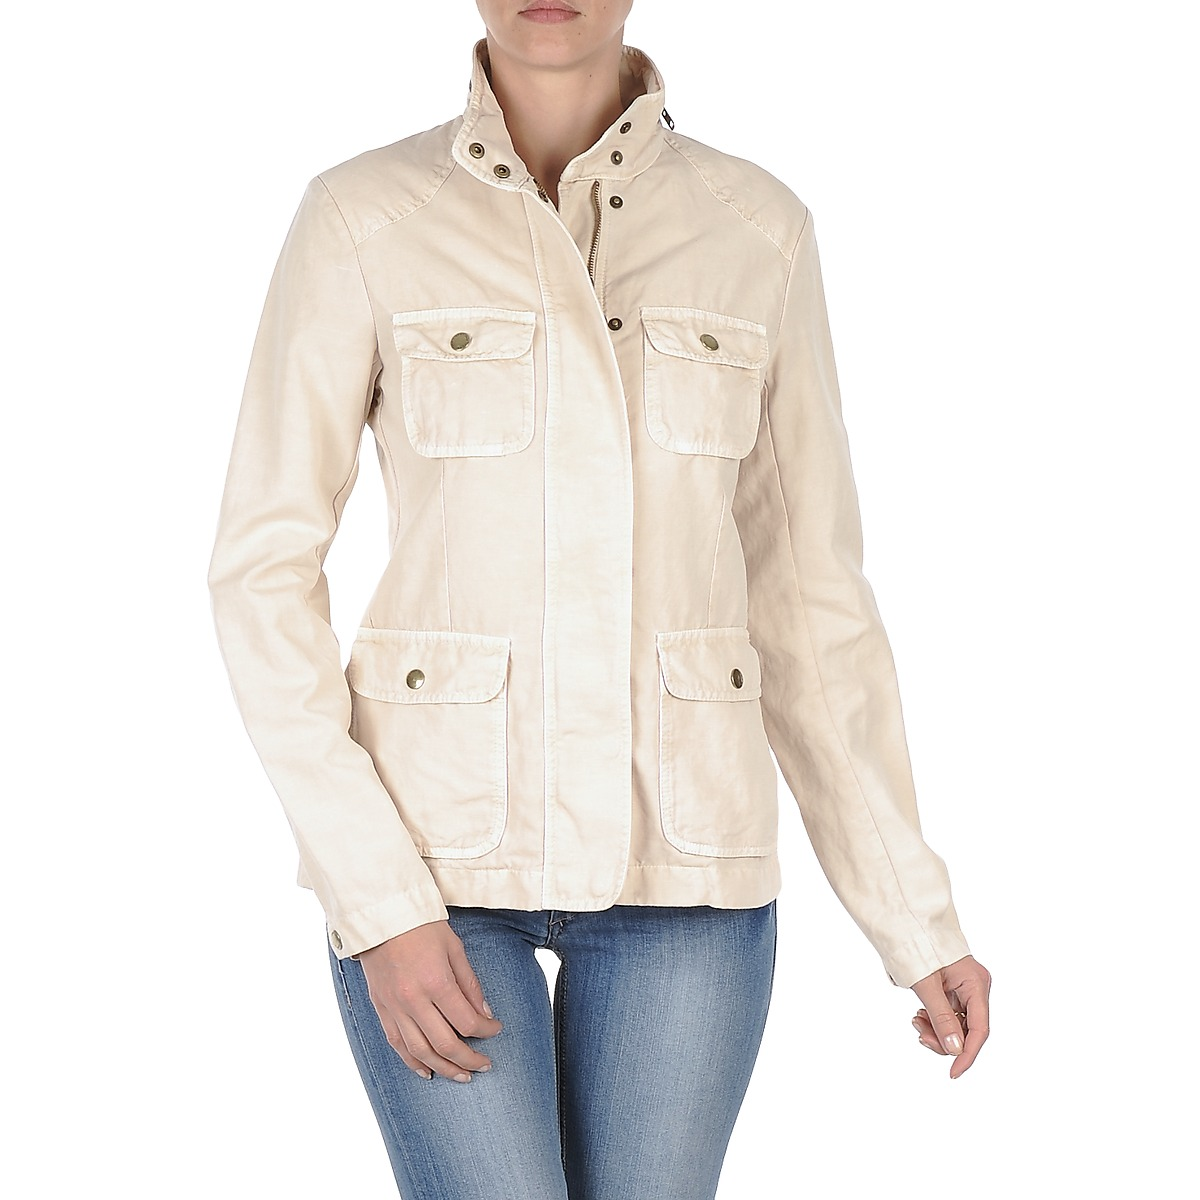 Gant COTTON LINEN 4PKT JACKET Cream